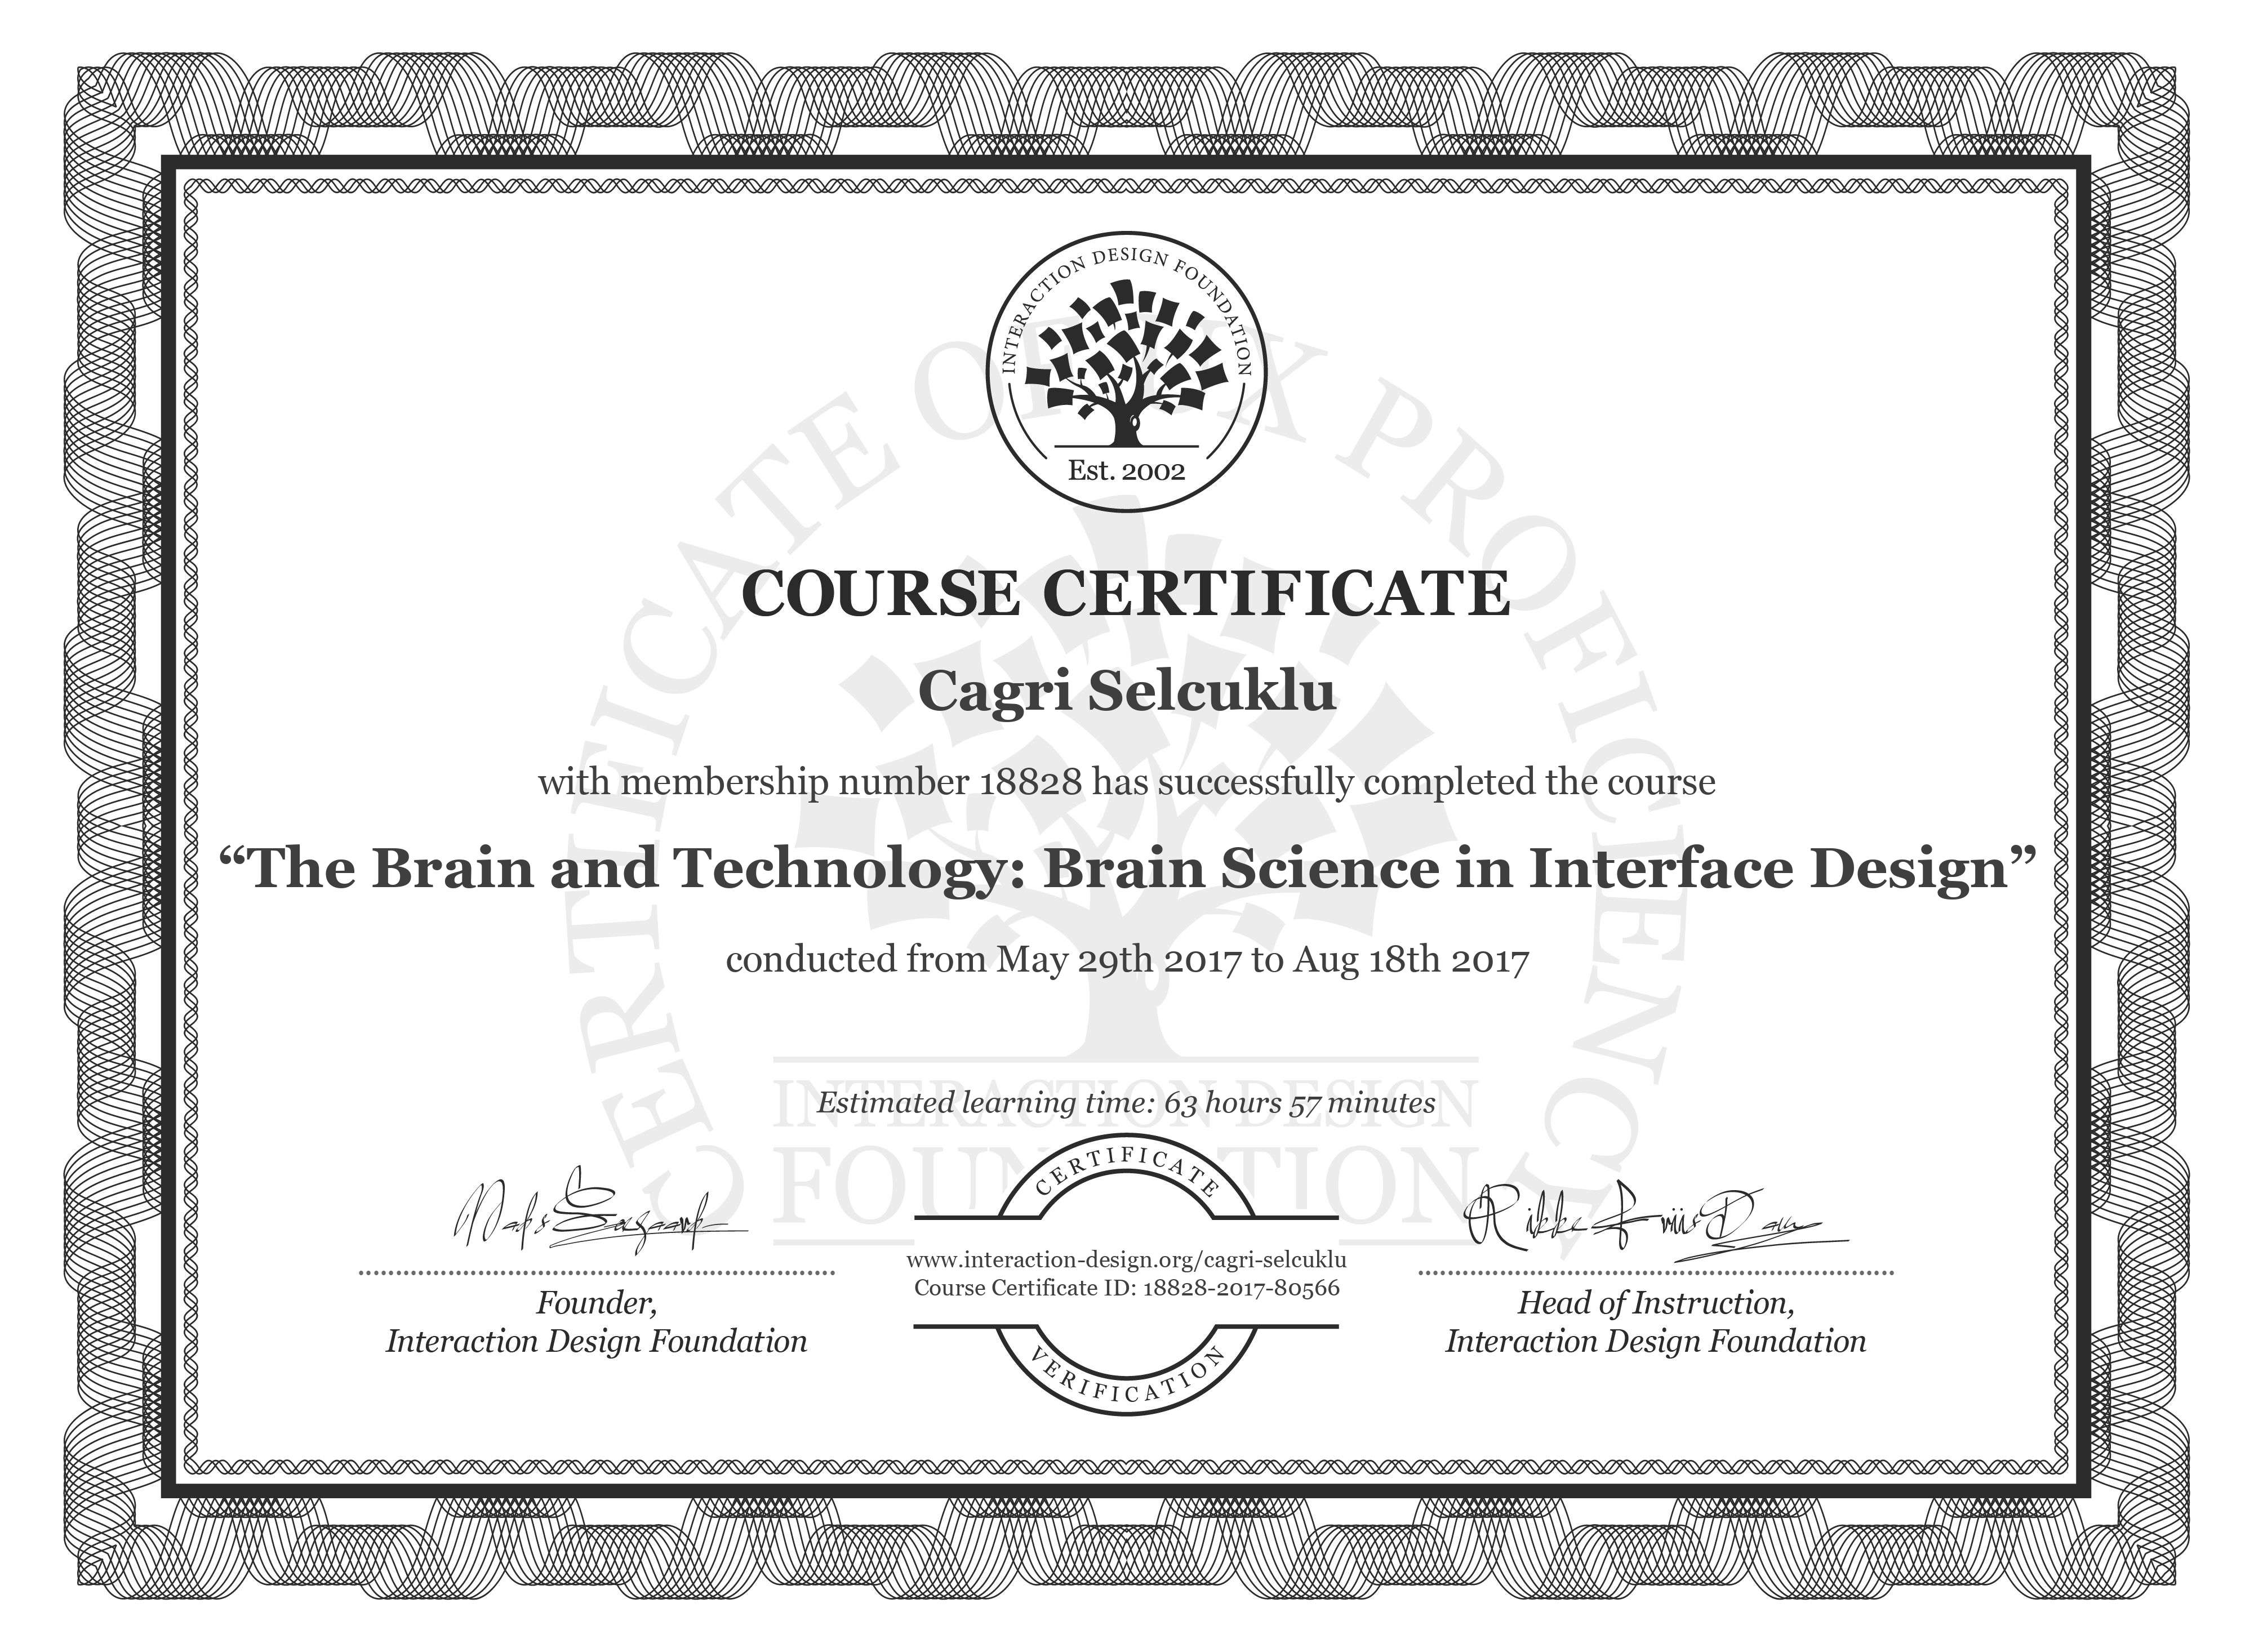 Cagri Selcuklu: Course Certificate - The Brain and Technology: Brain Science in Interface Design